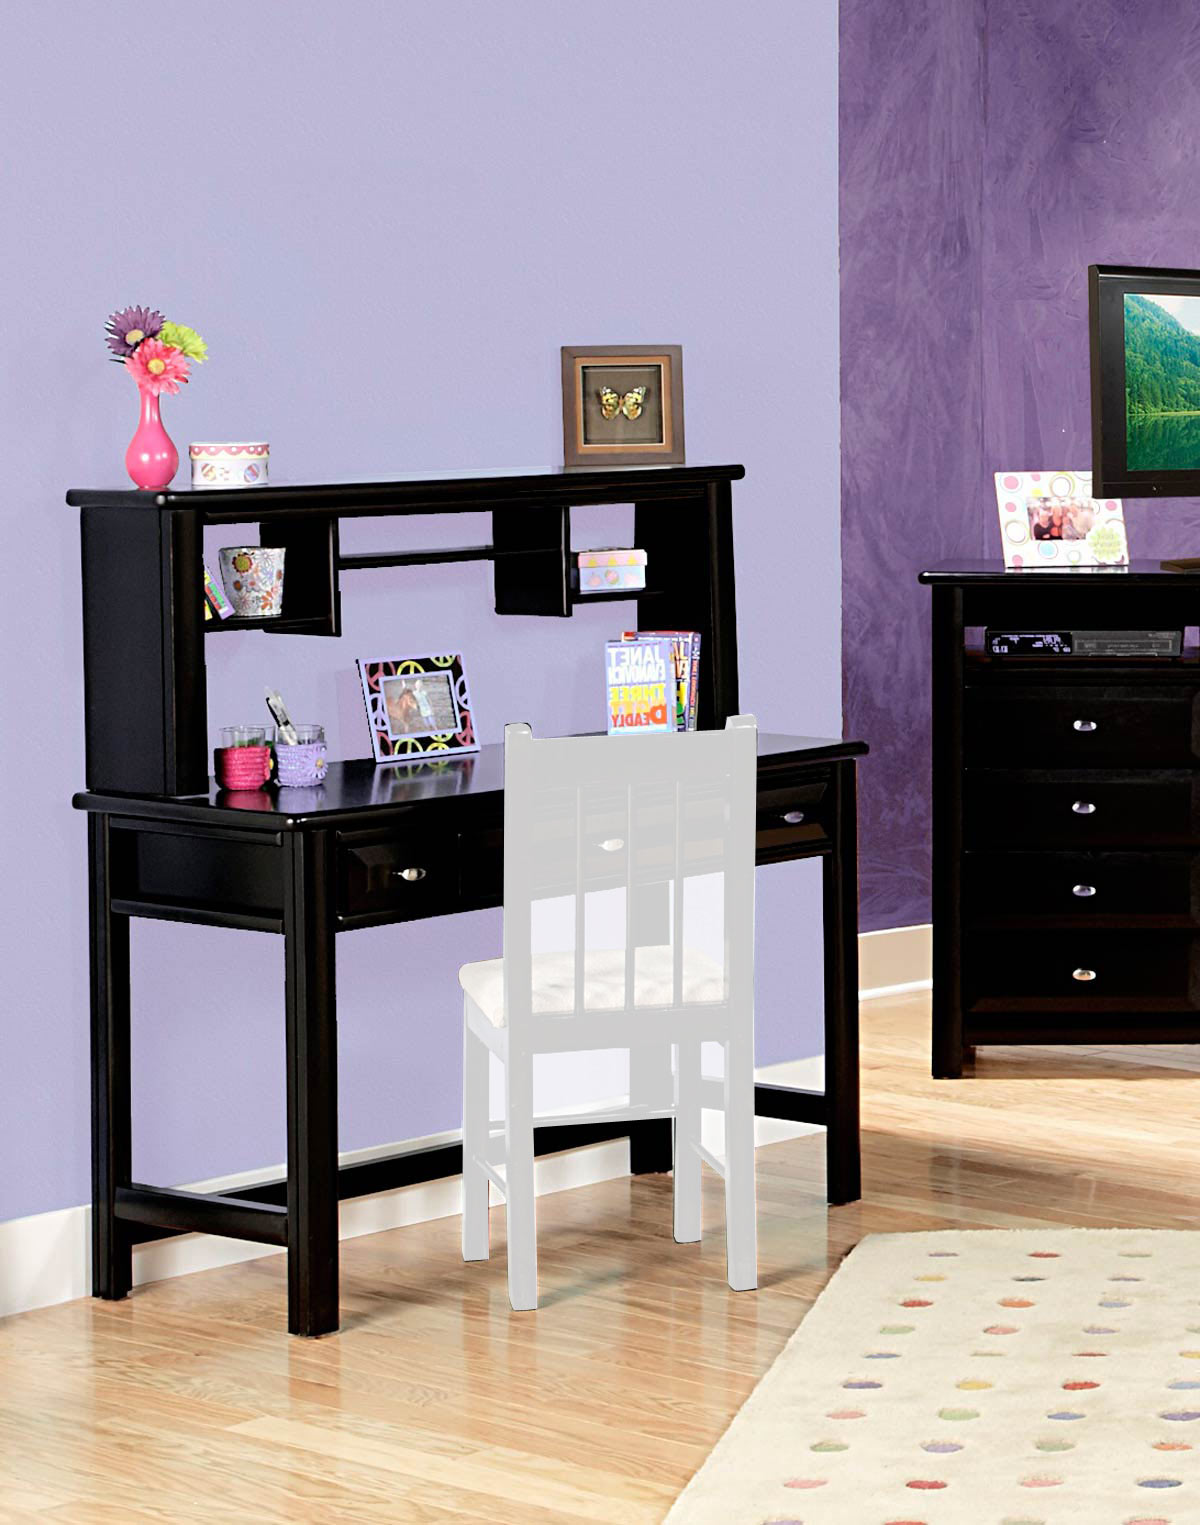 Chelsea Home 3534540-4541 3 Drawer Student Desk with Hutch - Black Cherry